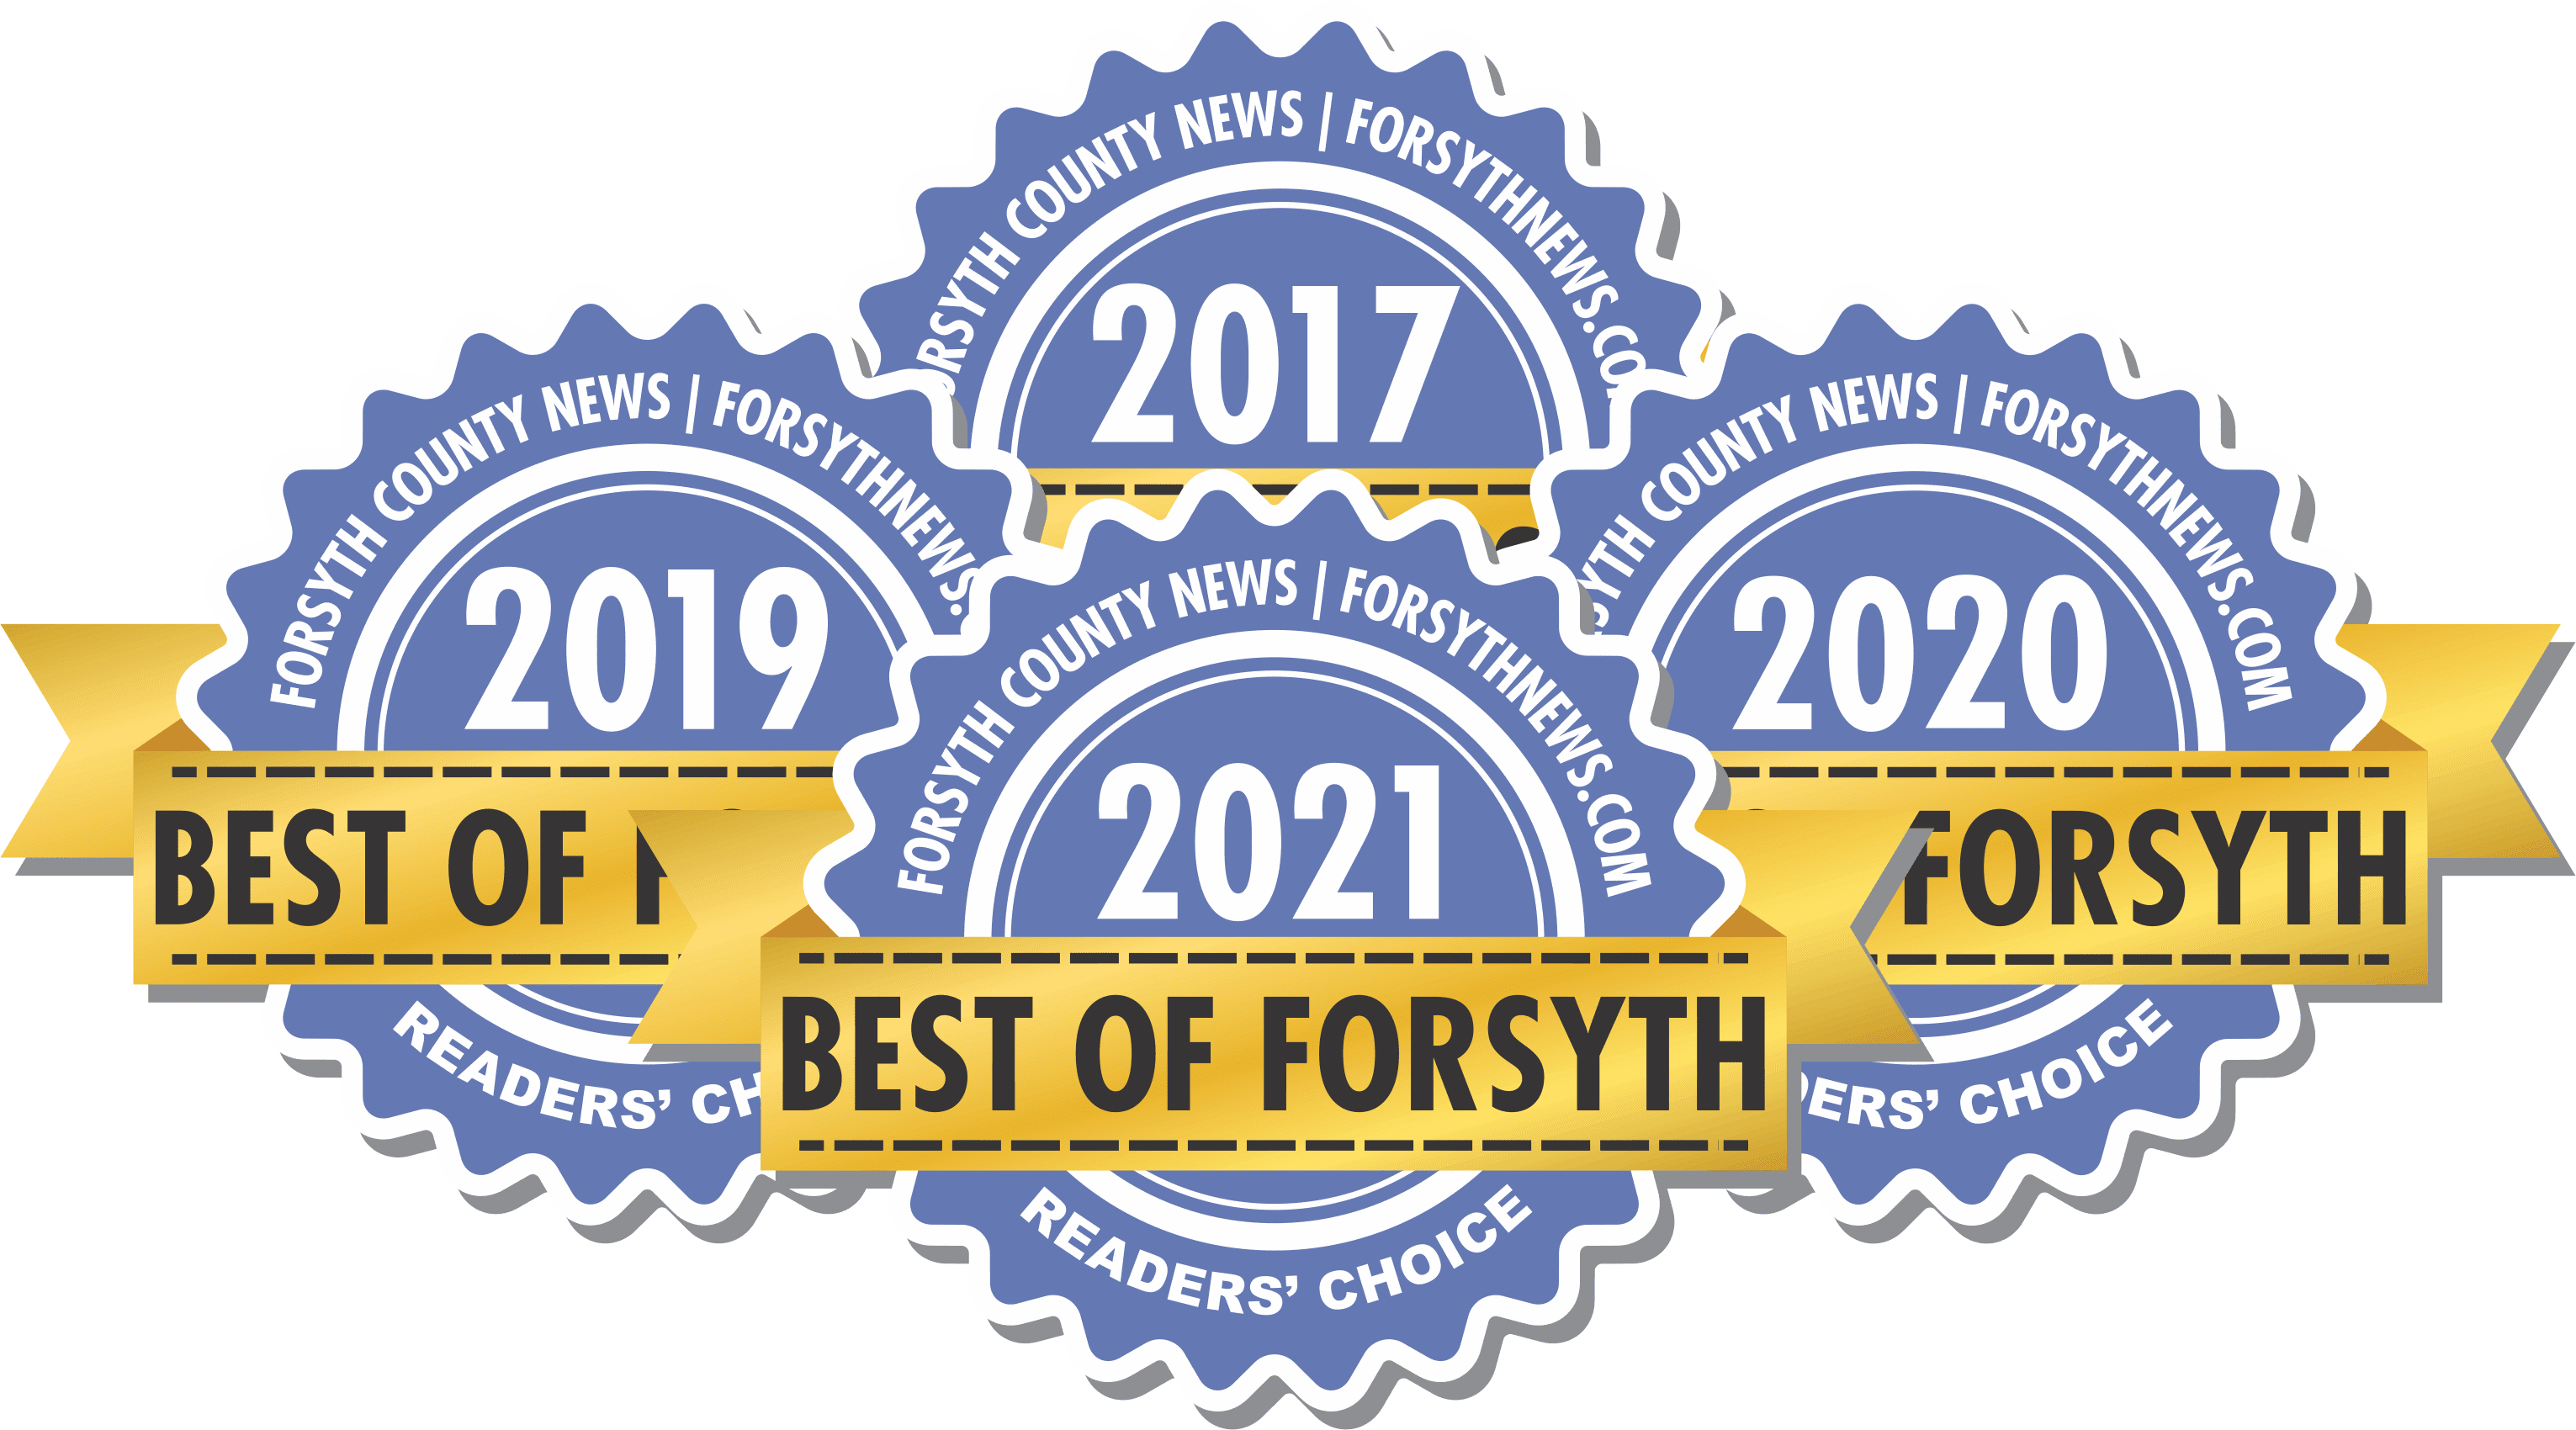 Best of Forsyth 4 Years